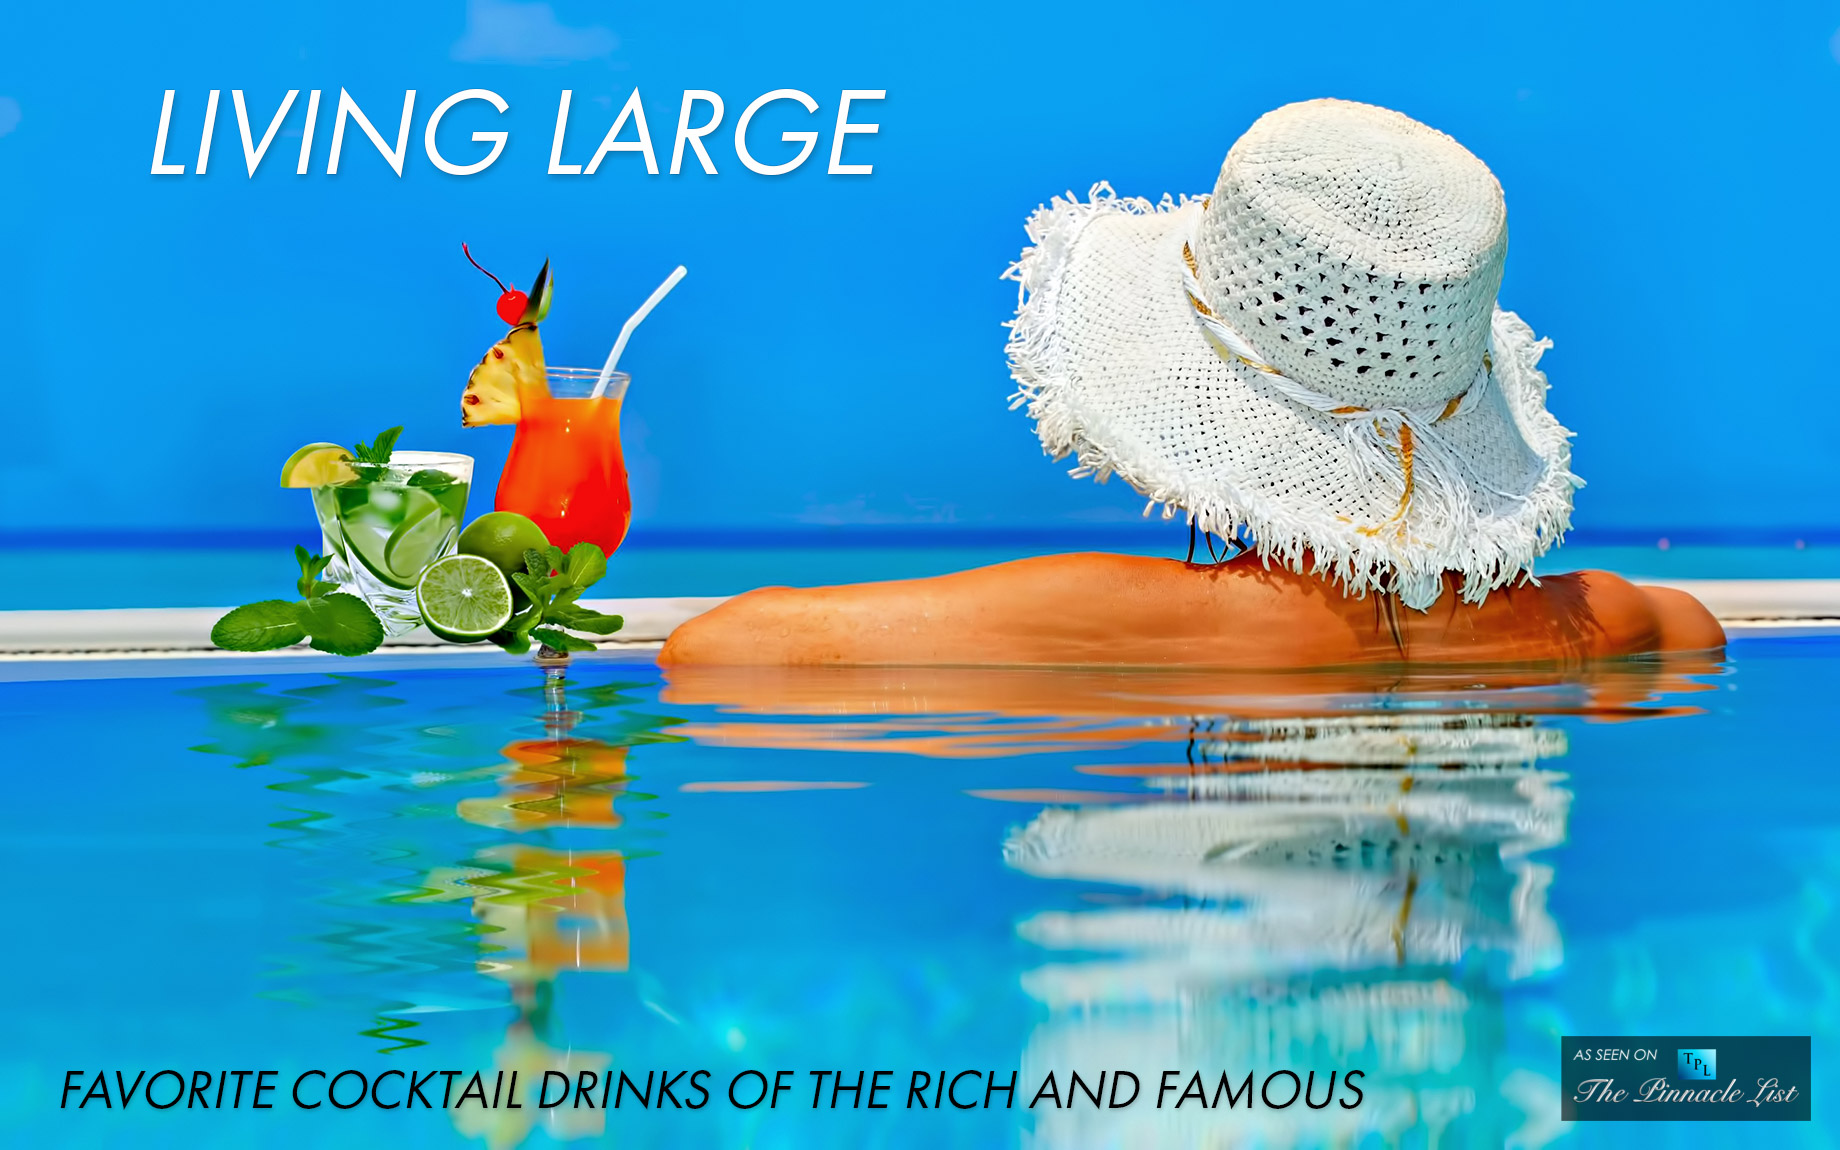 Living Large - Favorite Cocktail Drinks of the Rich and Famous